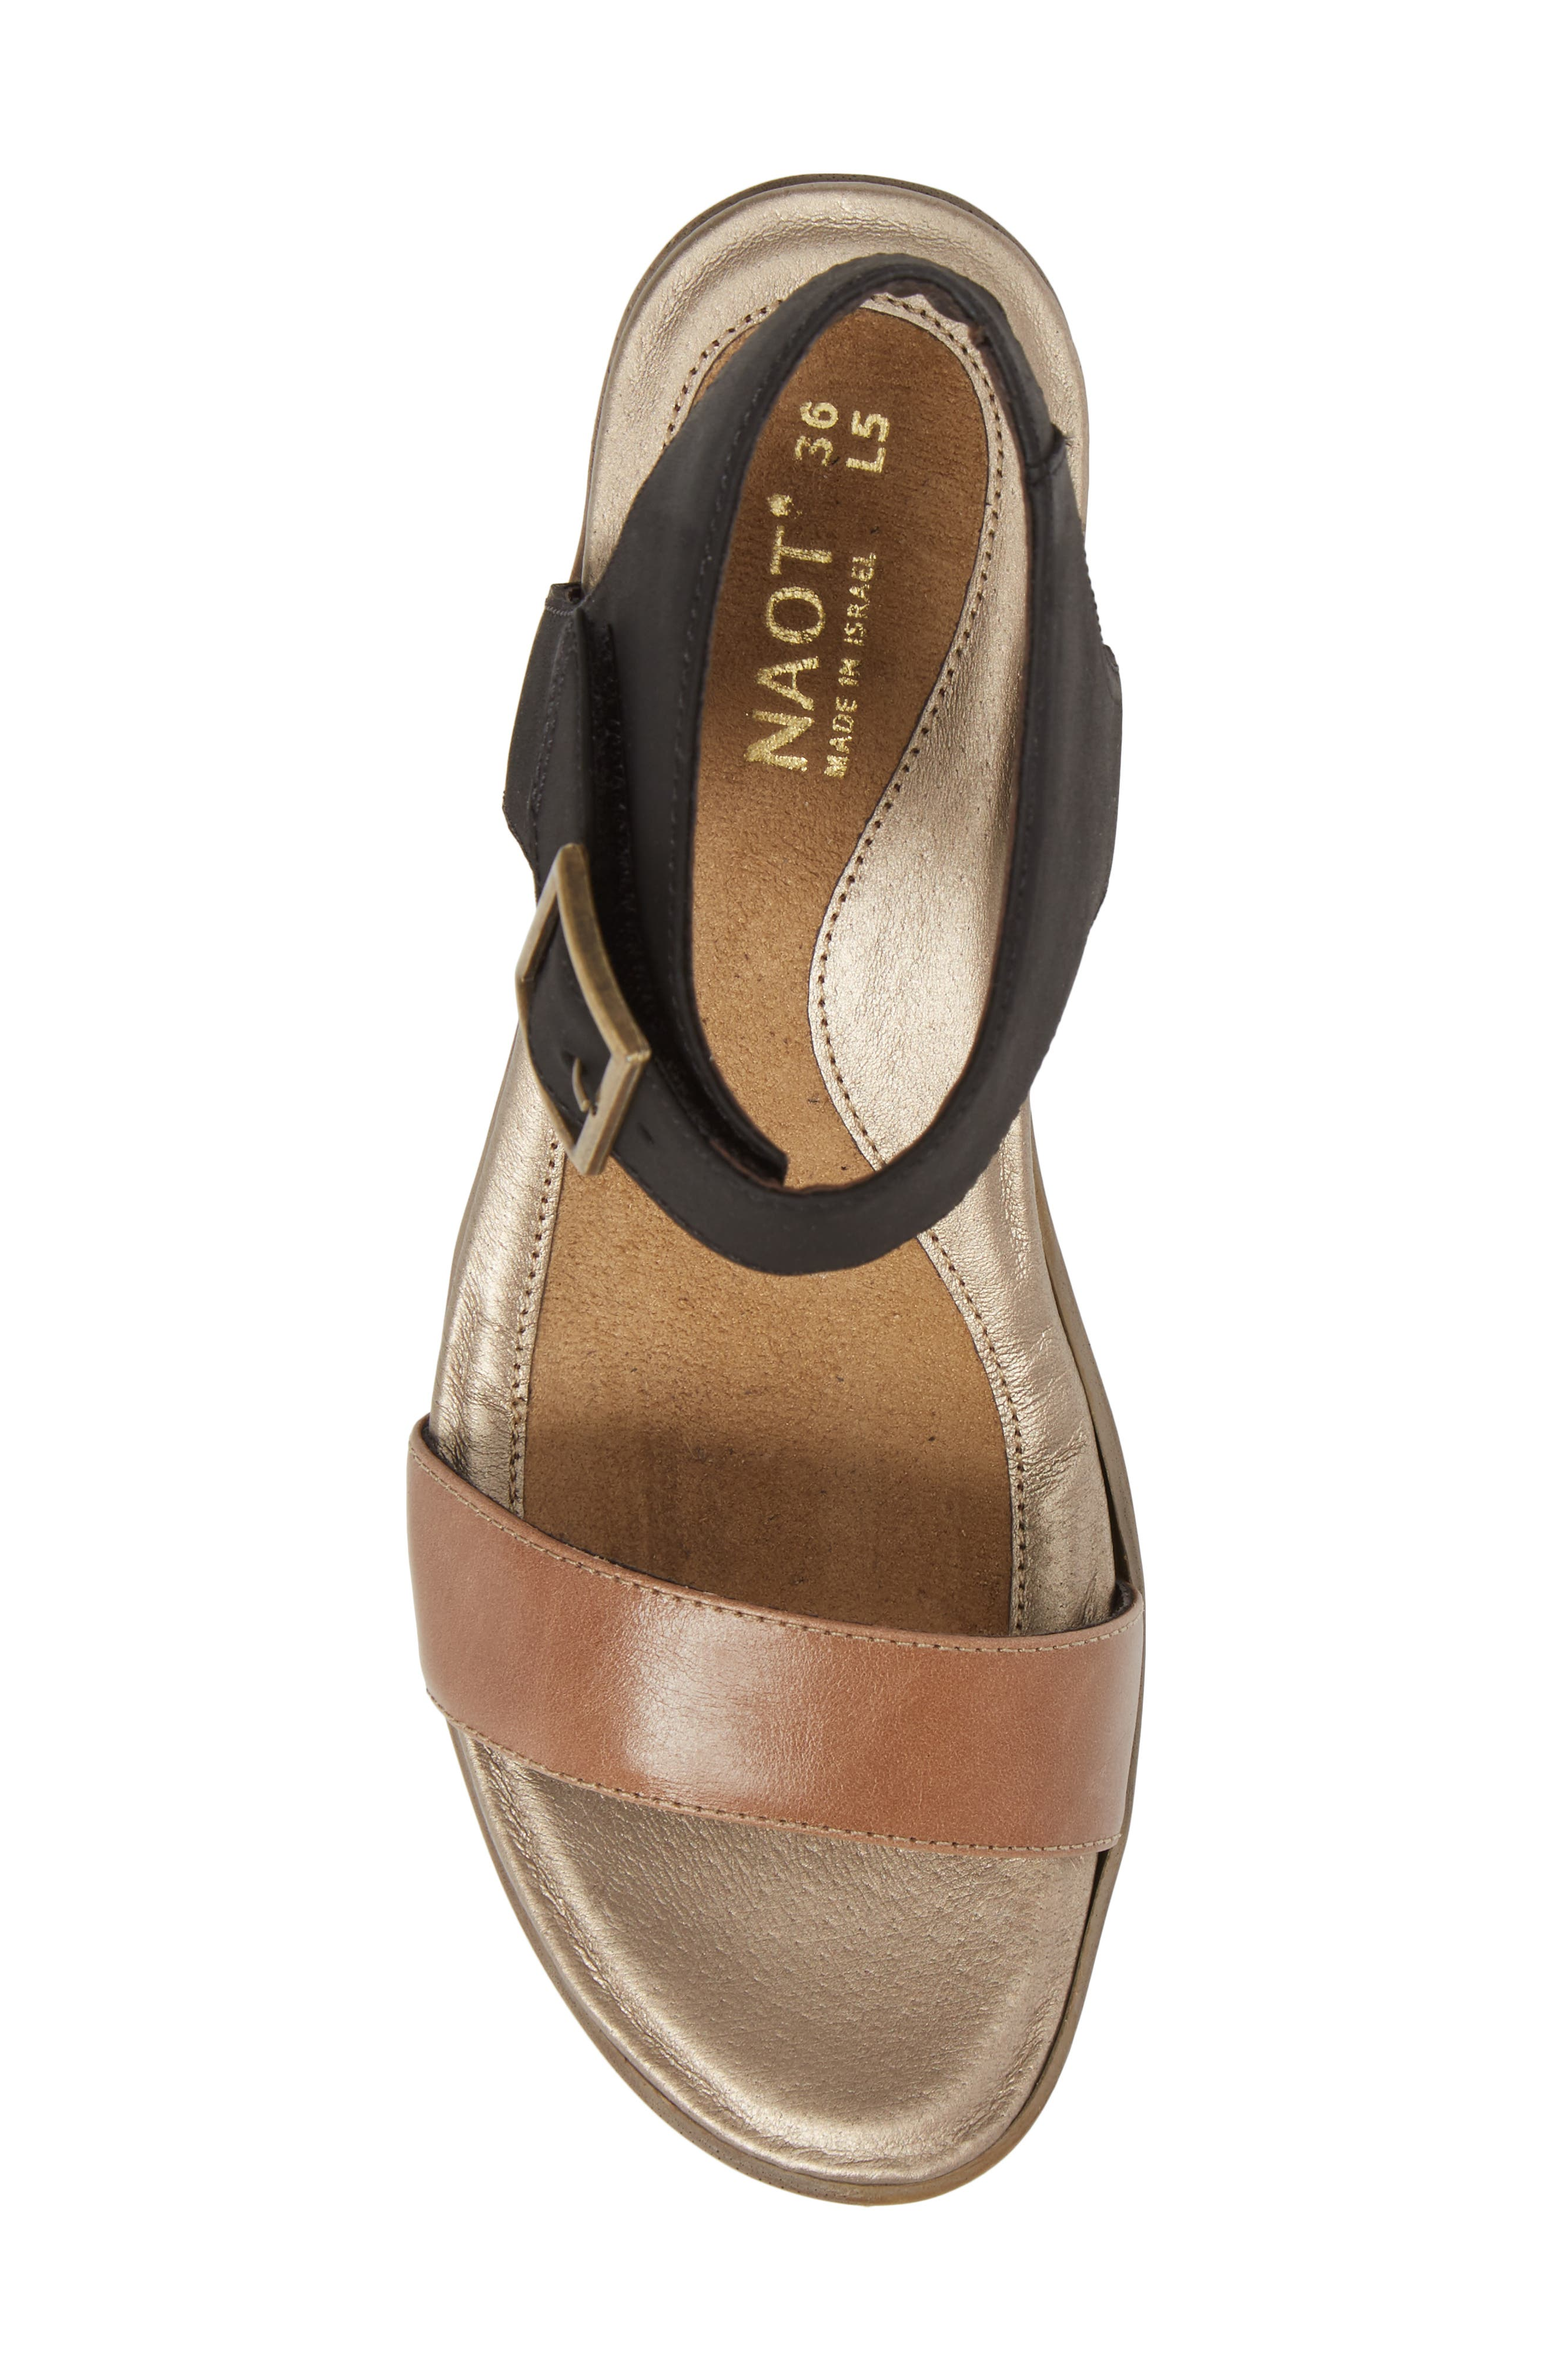 Caprice Wedge Sandal,                             Alternate thumbnail 5, color,                             TAN LEATHER